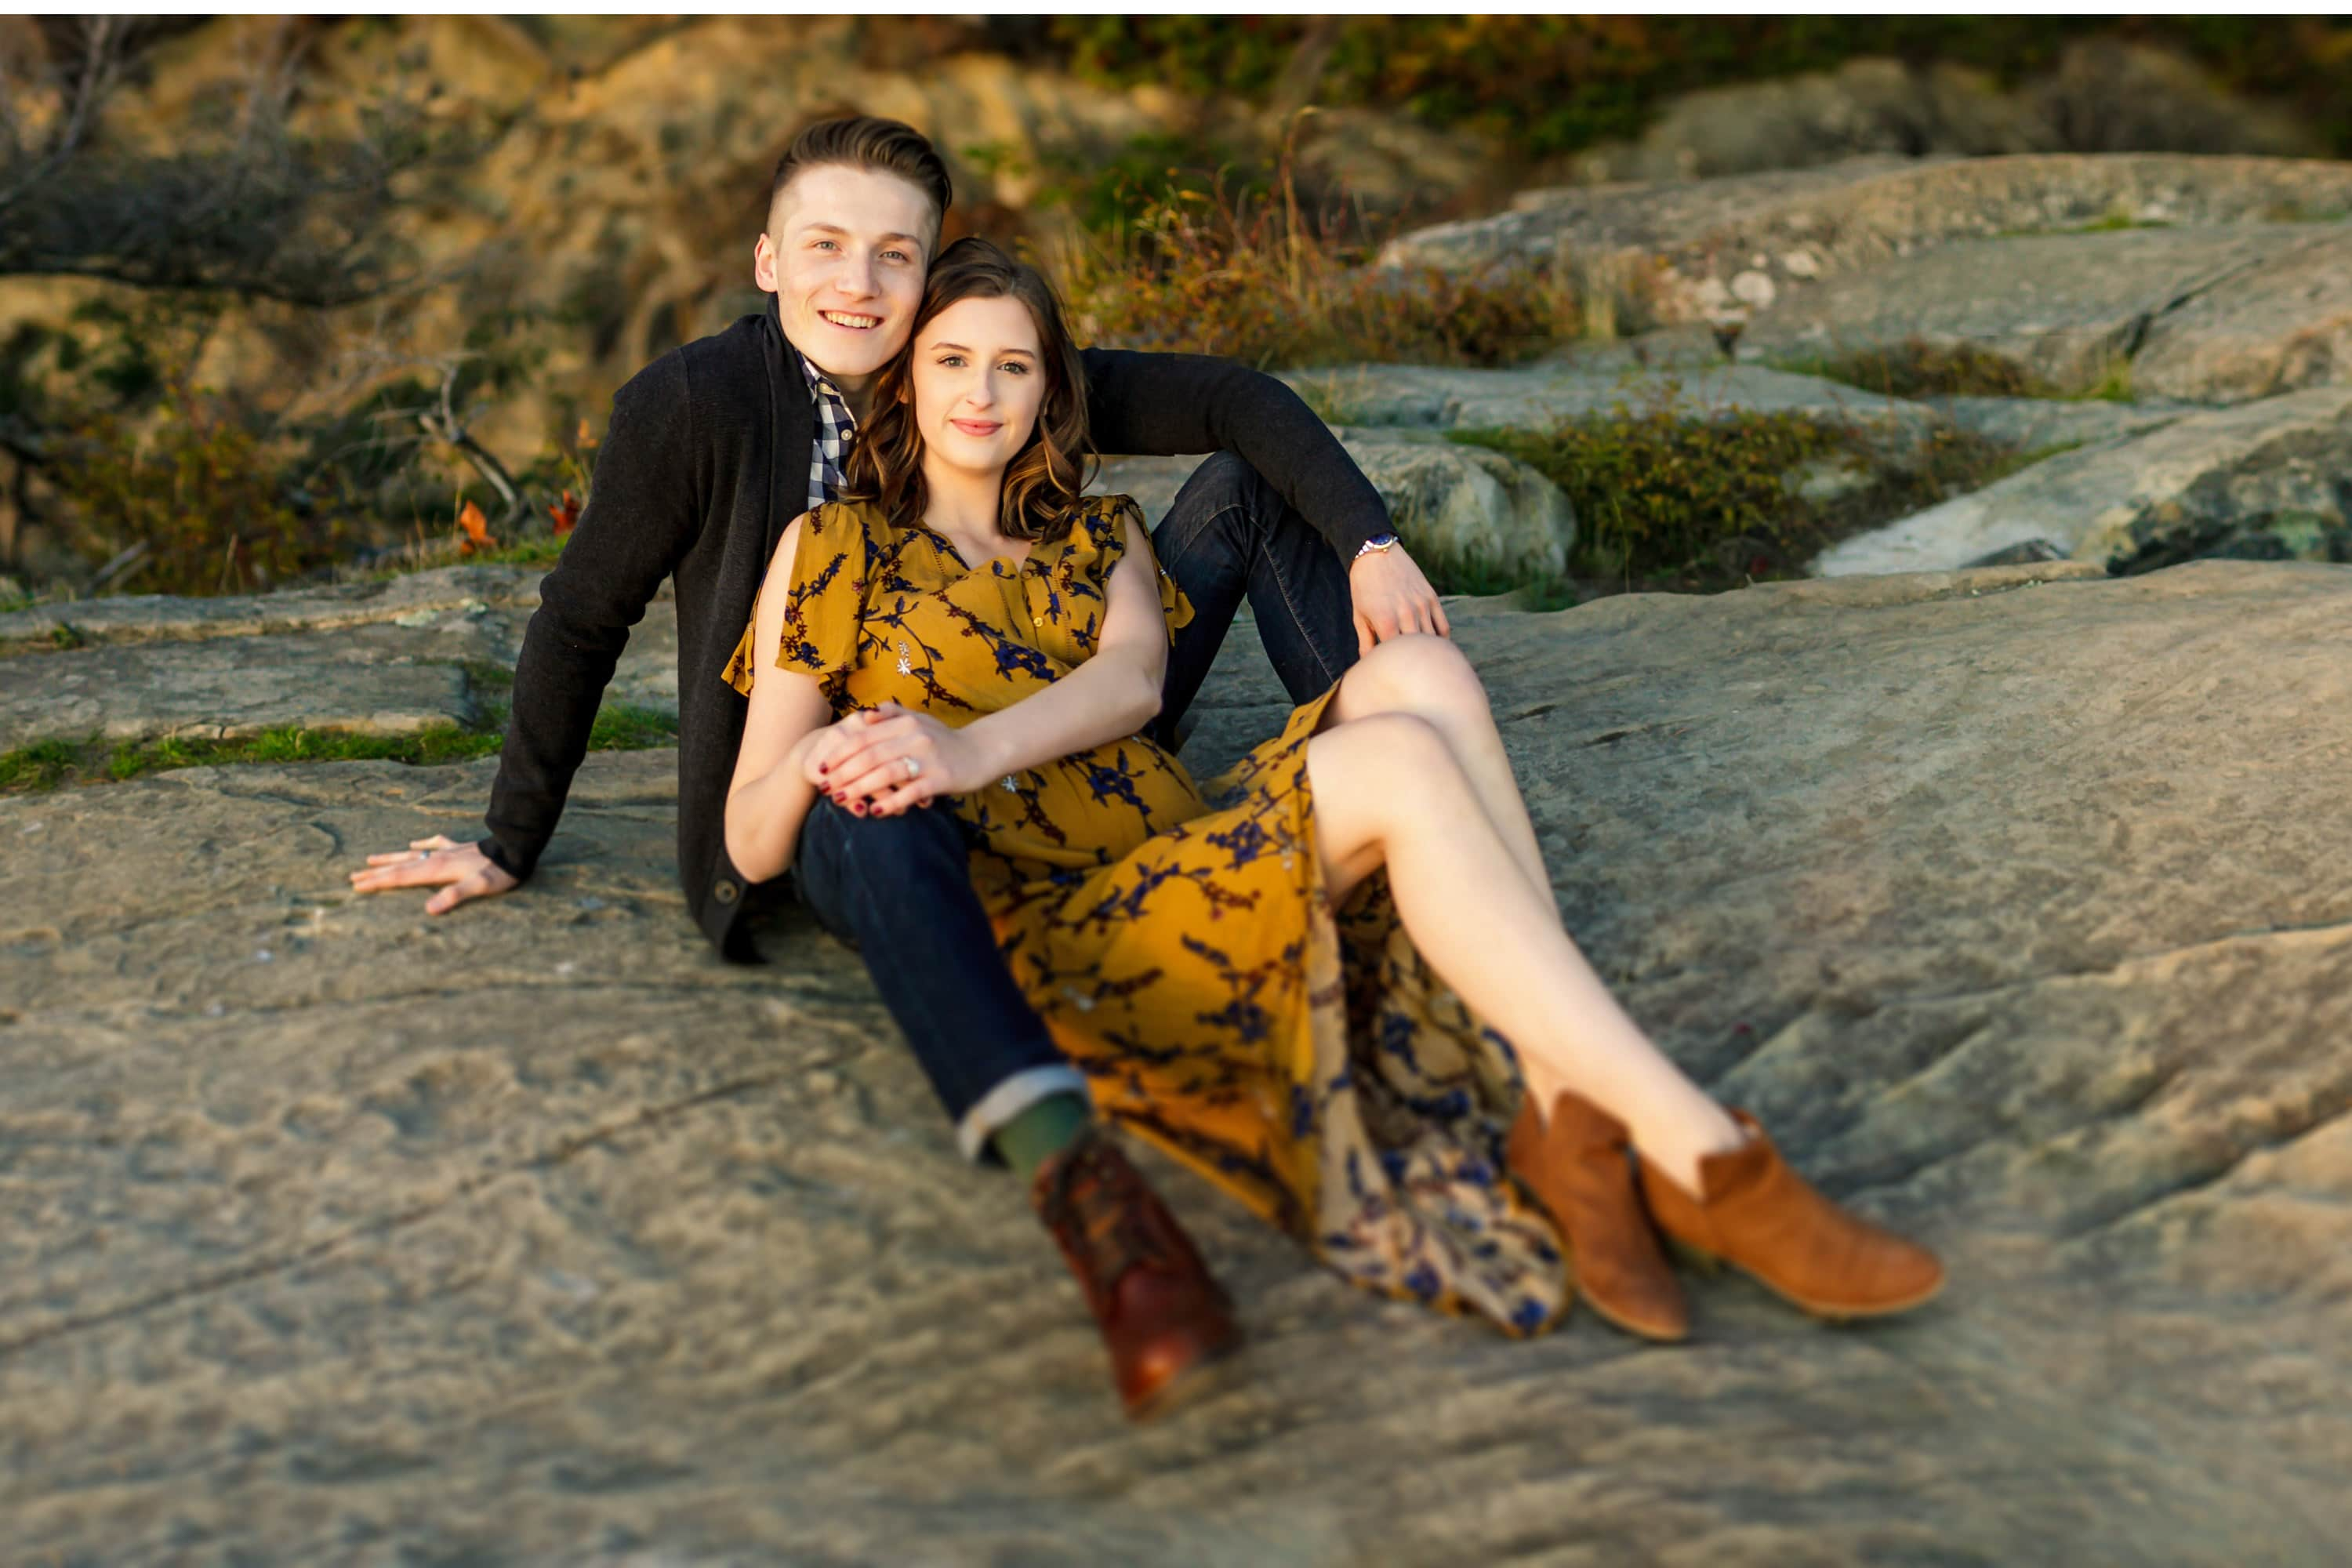 pnw adventure engagement session in bellingham wa fall photo inspiration Hovander edgy